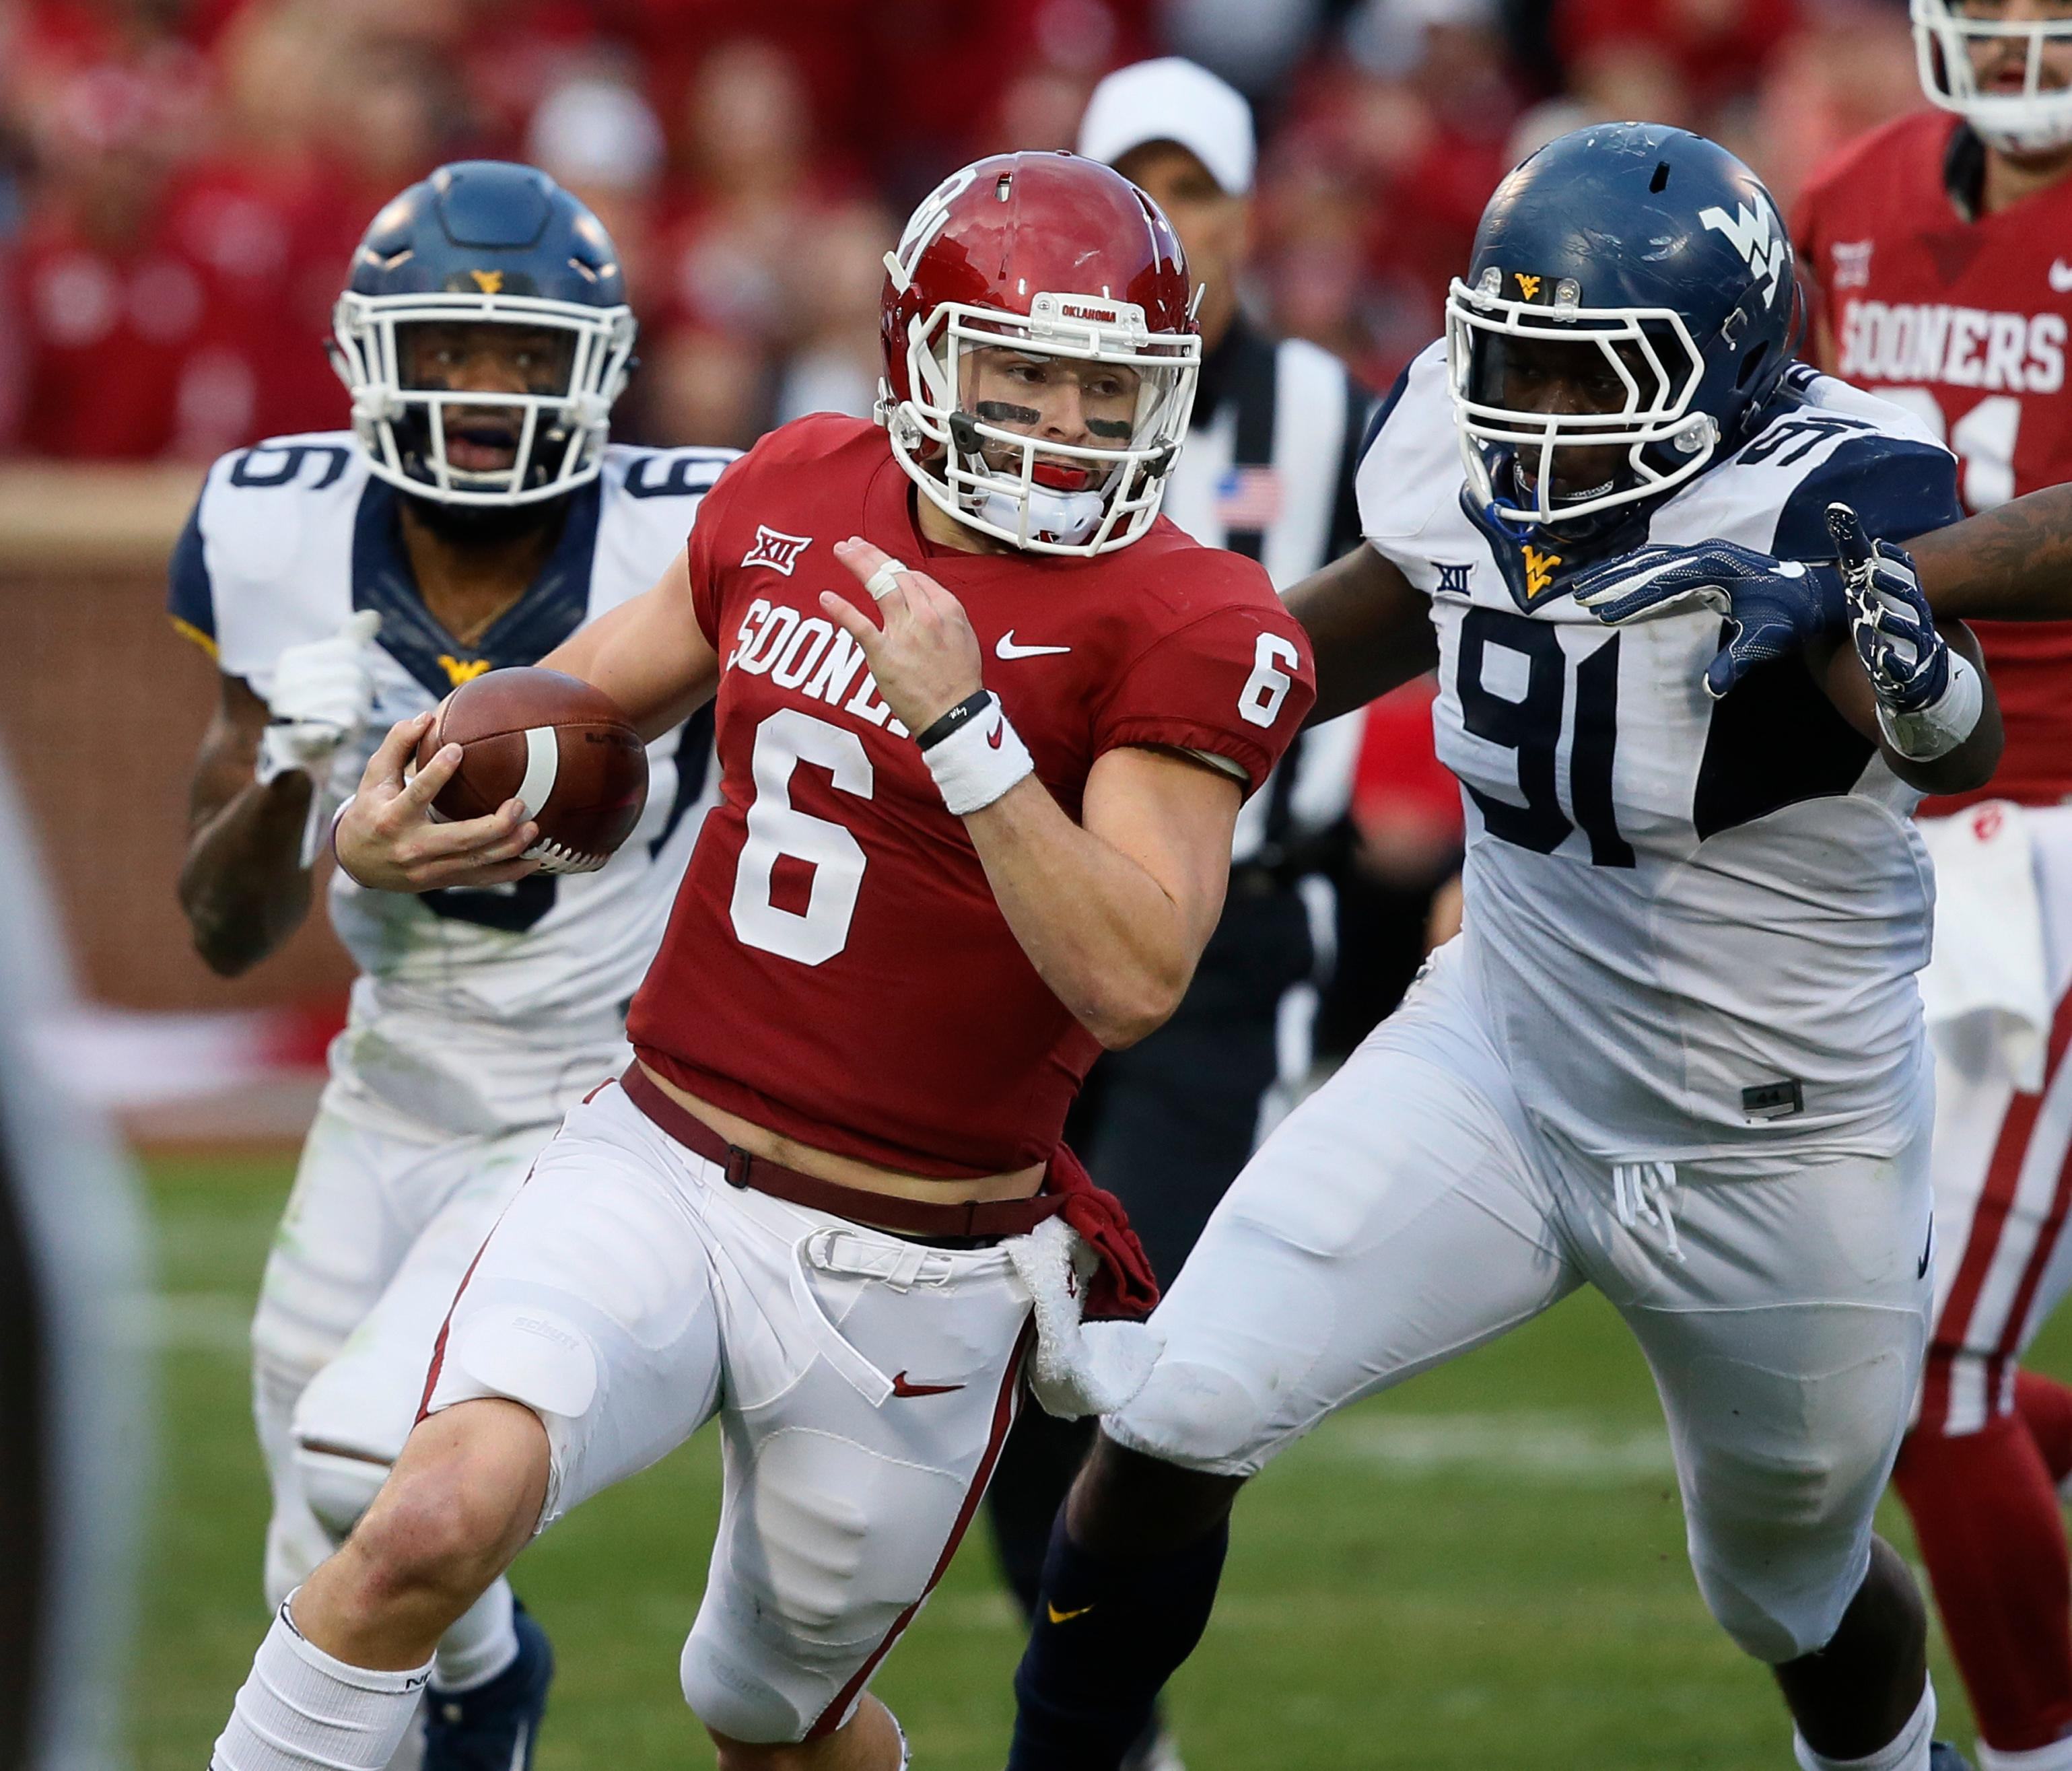 Oklahoma quarterback Baker Mayfield (6) carries past West Virginia safety Dravon Askew-Henry (6) and defensive lineman Ezekiel Rose (91) in the second quarter of an NCAA college football game in Norman, Okla., Saturday, Nov. 25, 2017. (AP Photo/Sue Ogrocki)